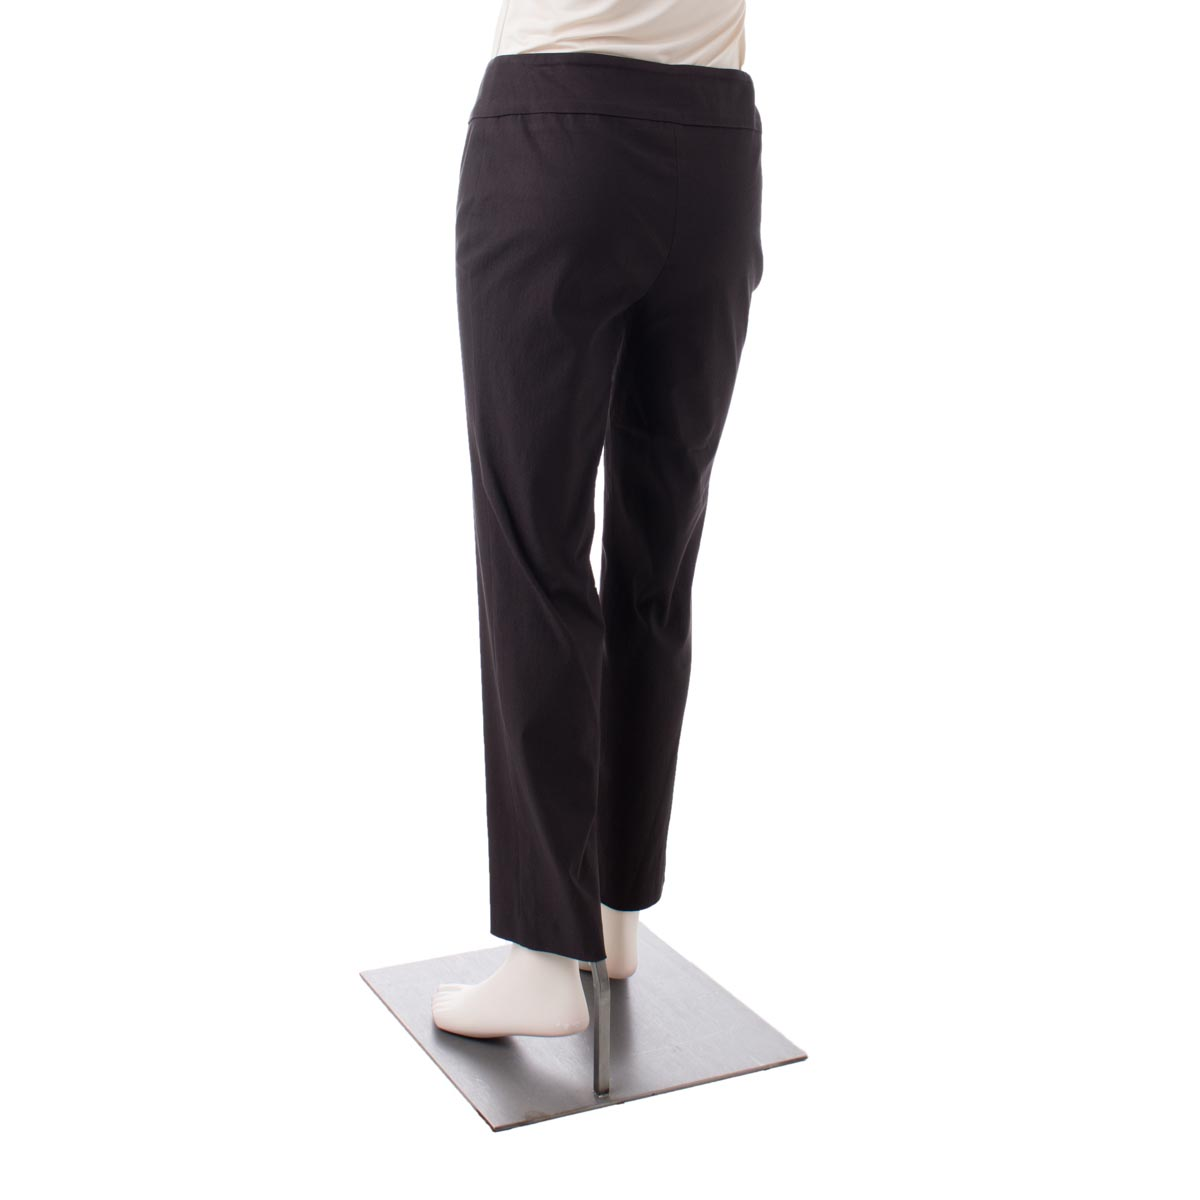 Lisette Women's Ankle Pant Discontinued Pricing